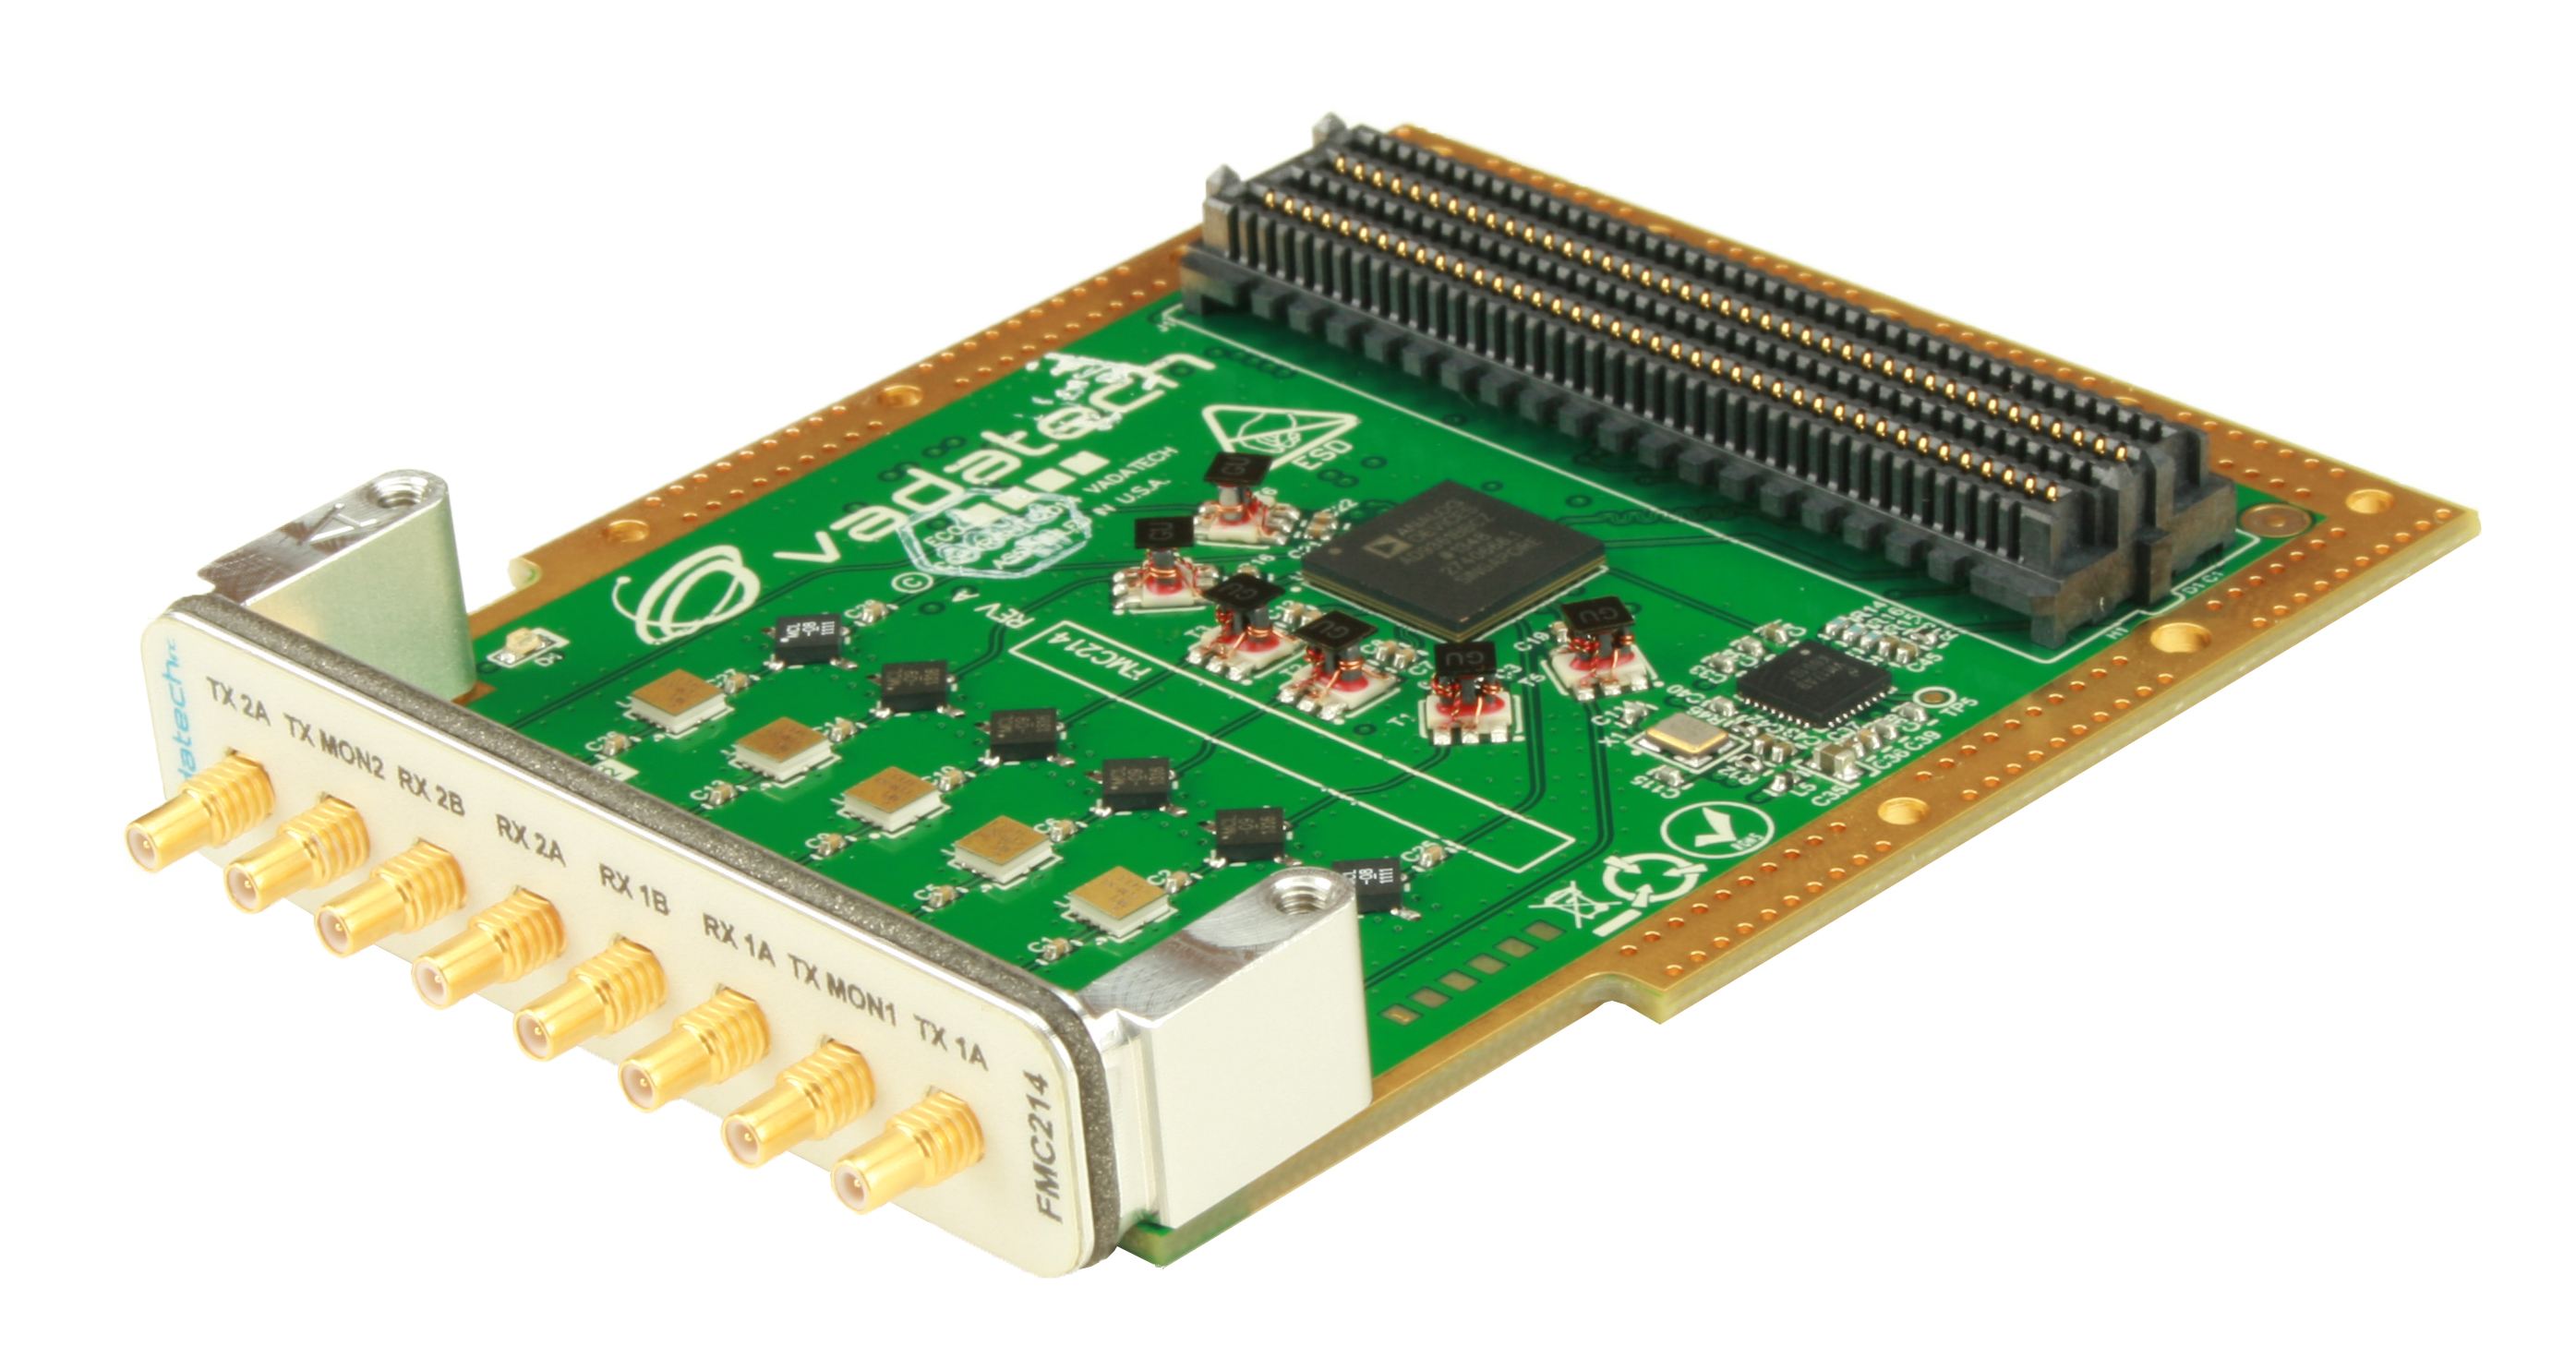 Dual Wideband Transceiver In Fmc Format Engineer Live Mixed Signal Vadatech Has Launched A The Fpga Mezzanine Card For Embedded Designs